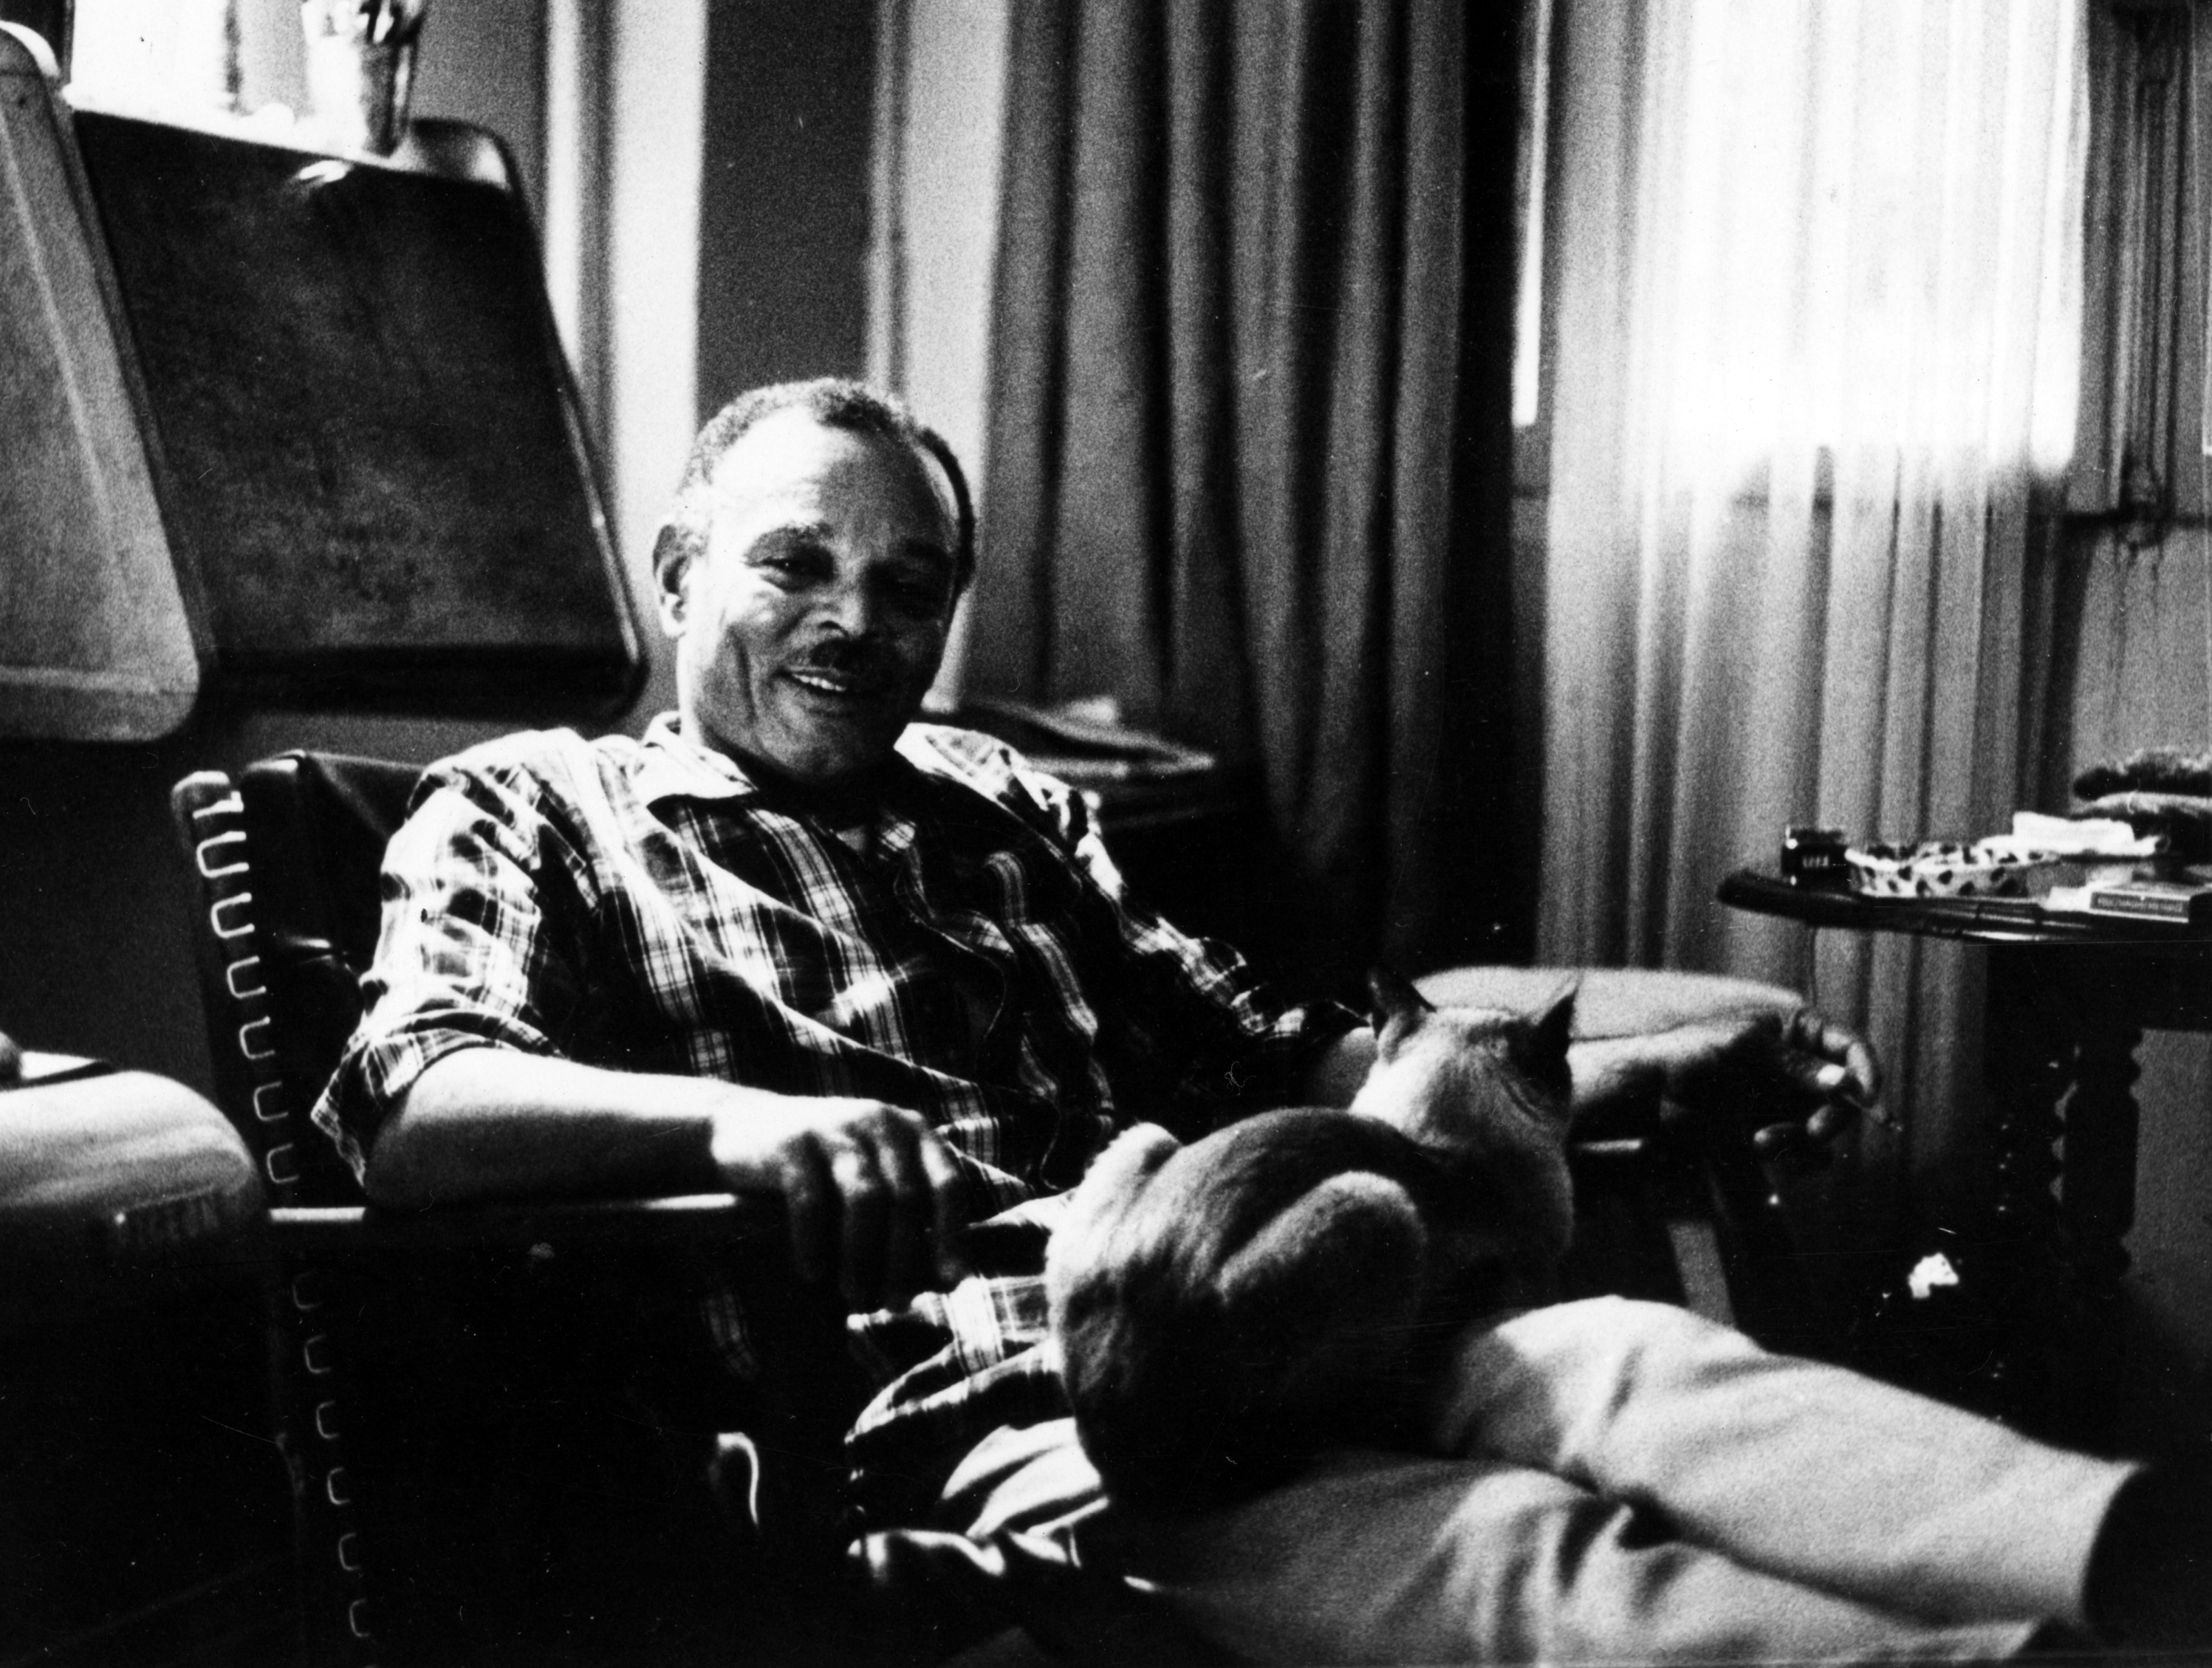 Chester B. Himes in a lounge chair, black and white photo, with a cat on his lap.